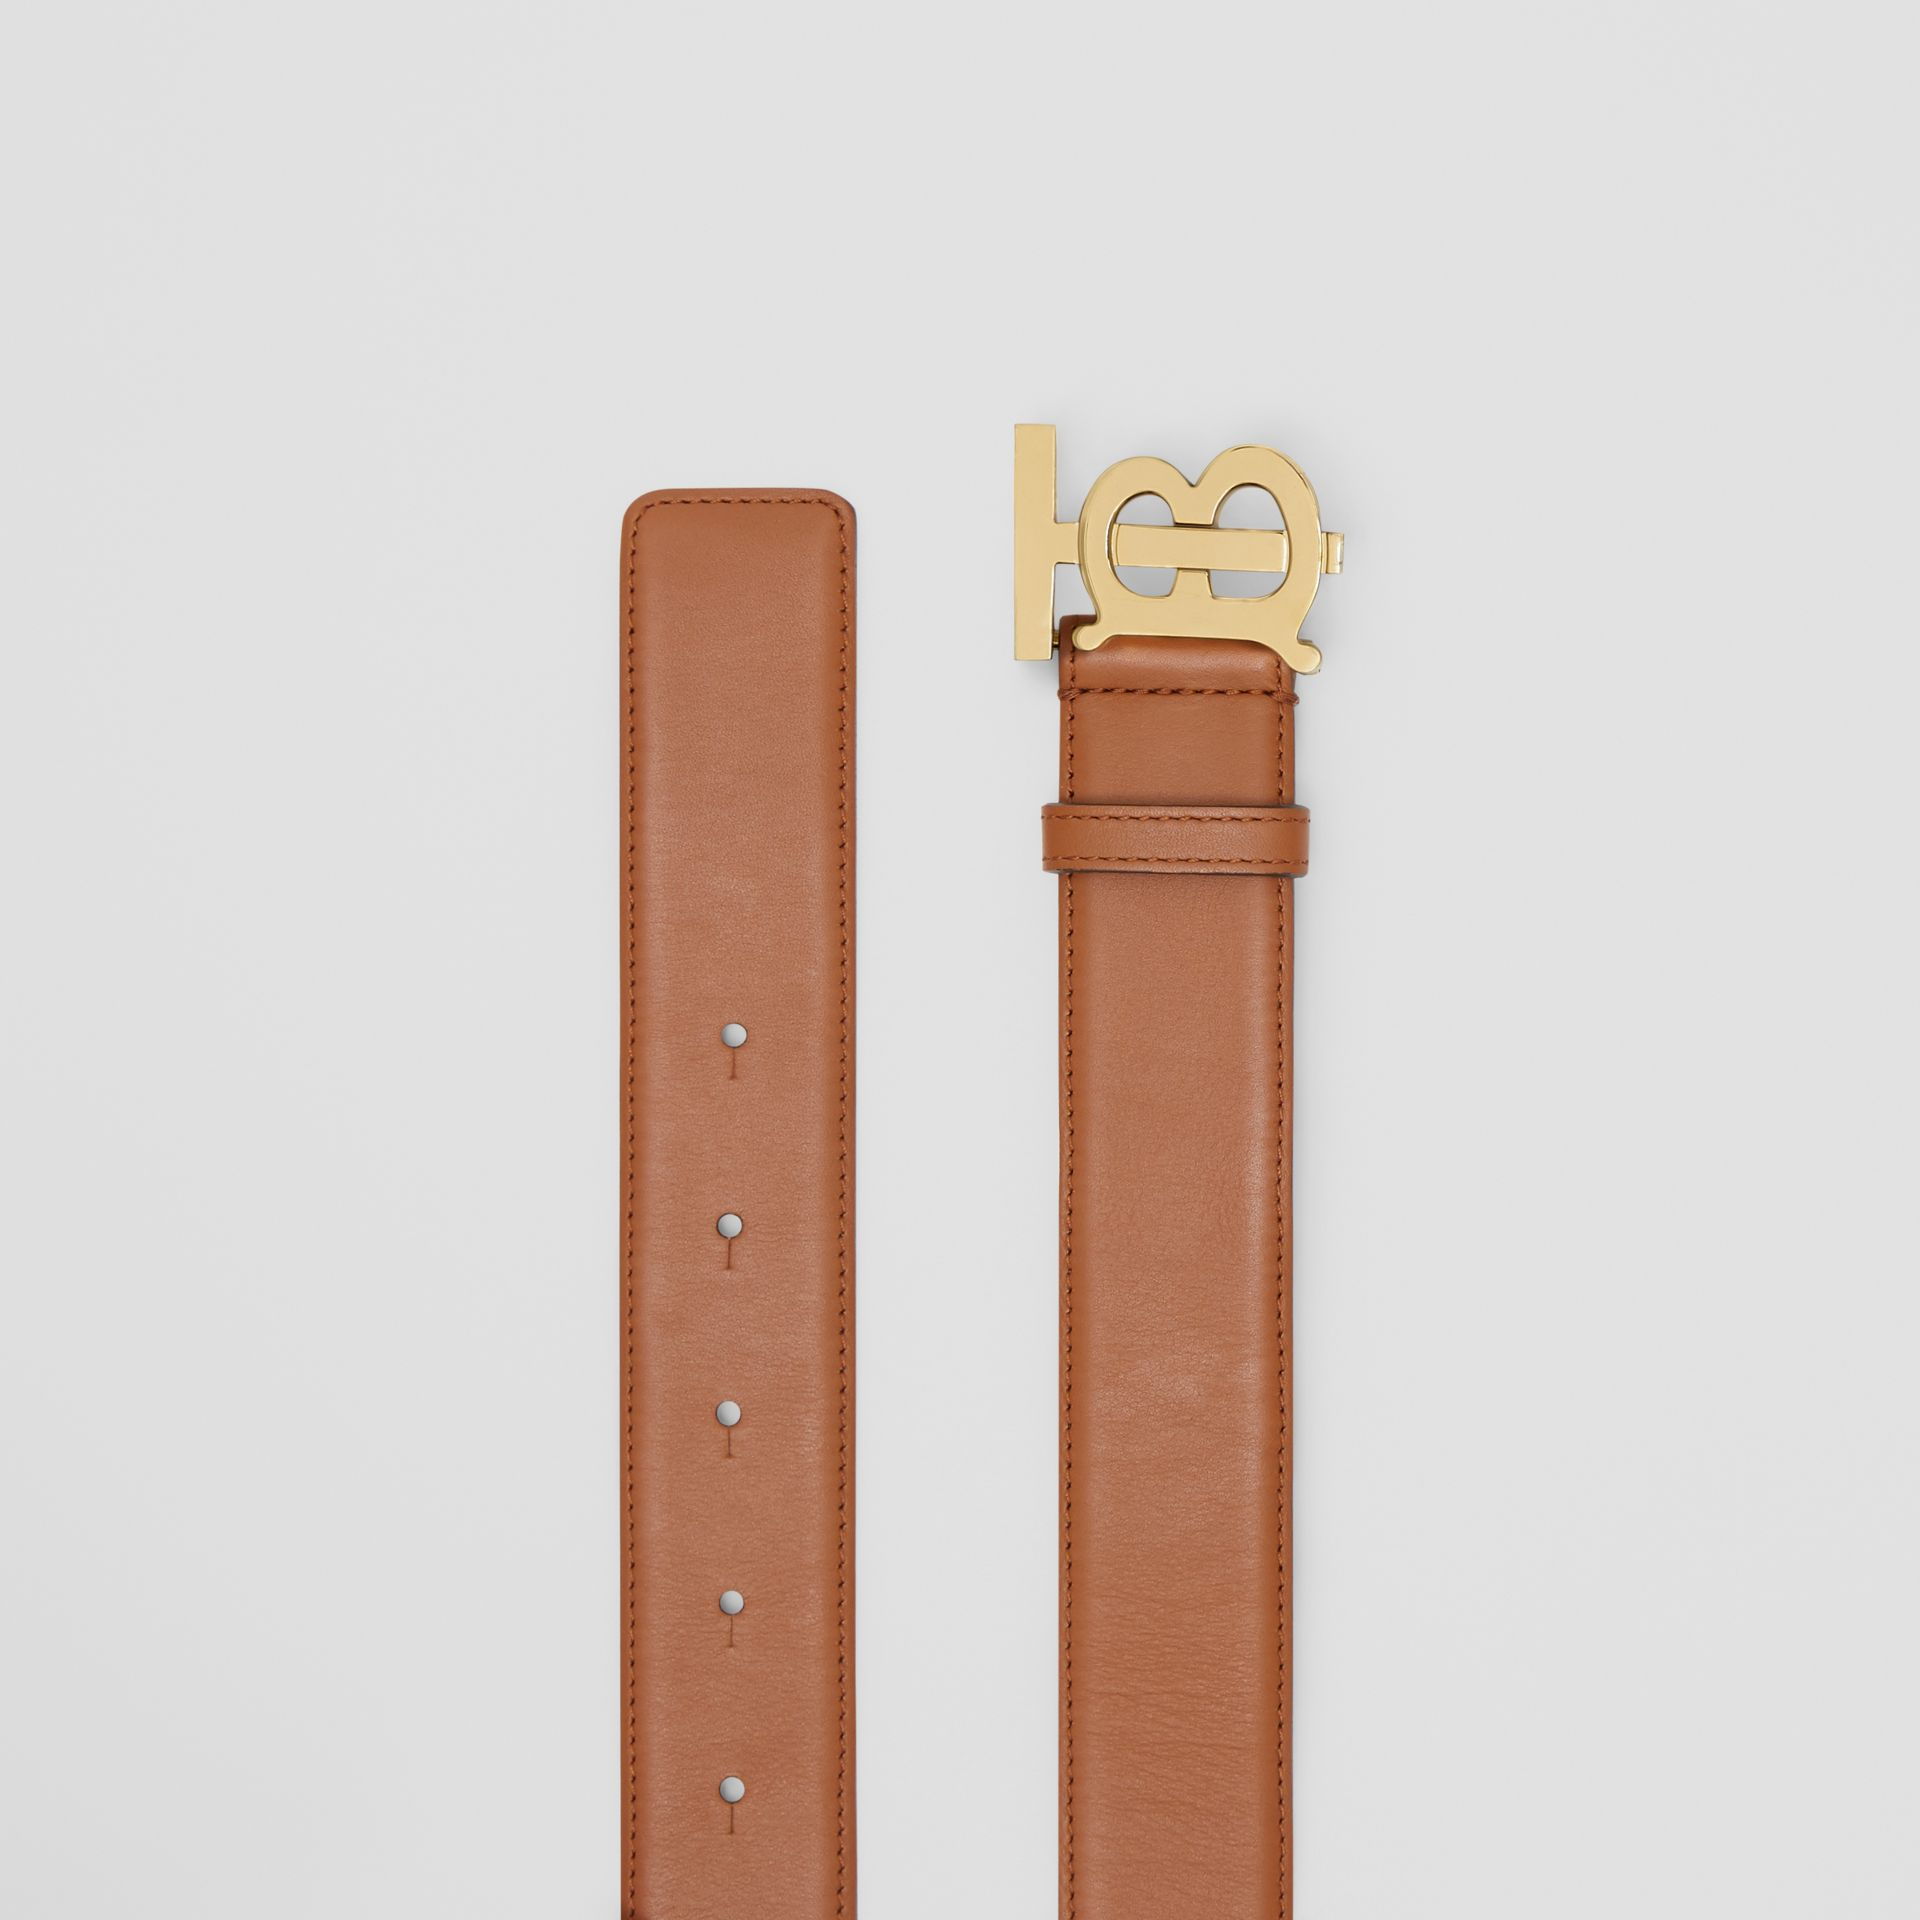 Monogram Motif Leather Belt in Tan - Women | Burberry - gallery image 5